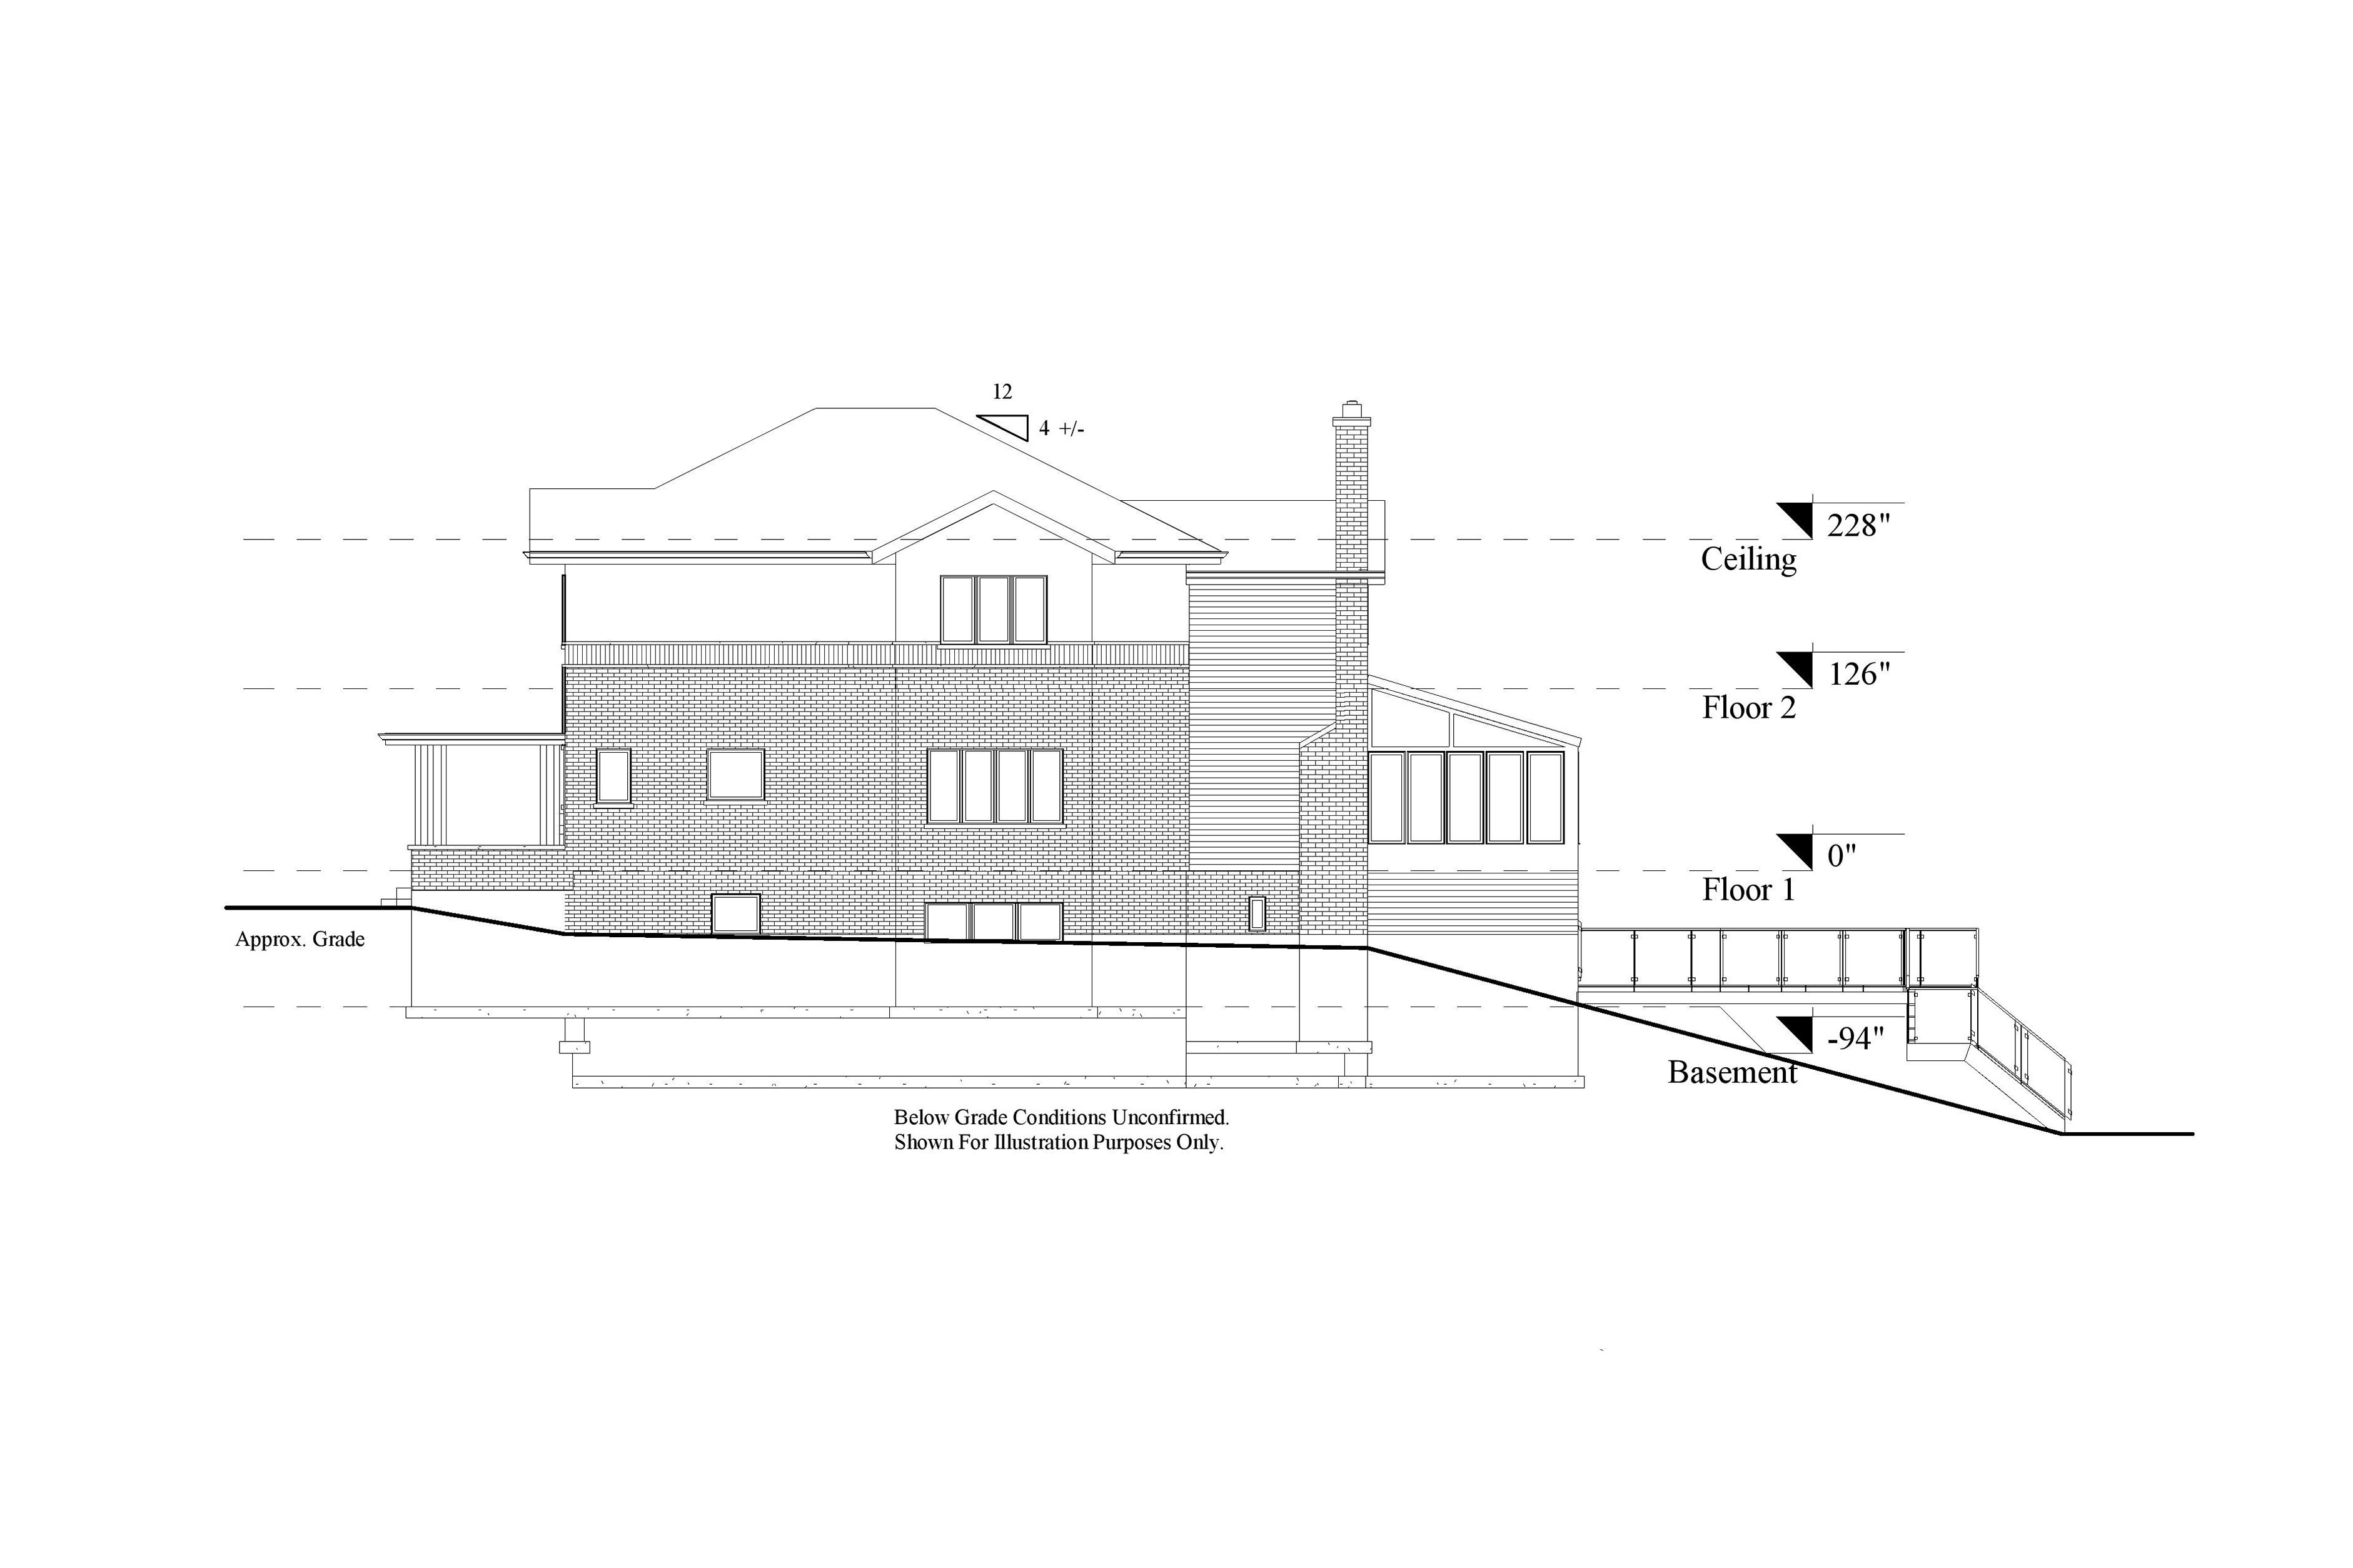 A 2D Scan to CAD elevation model of the side view of a two level residential house.